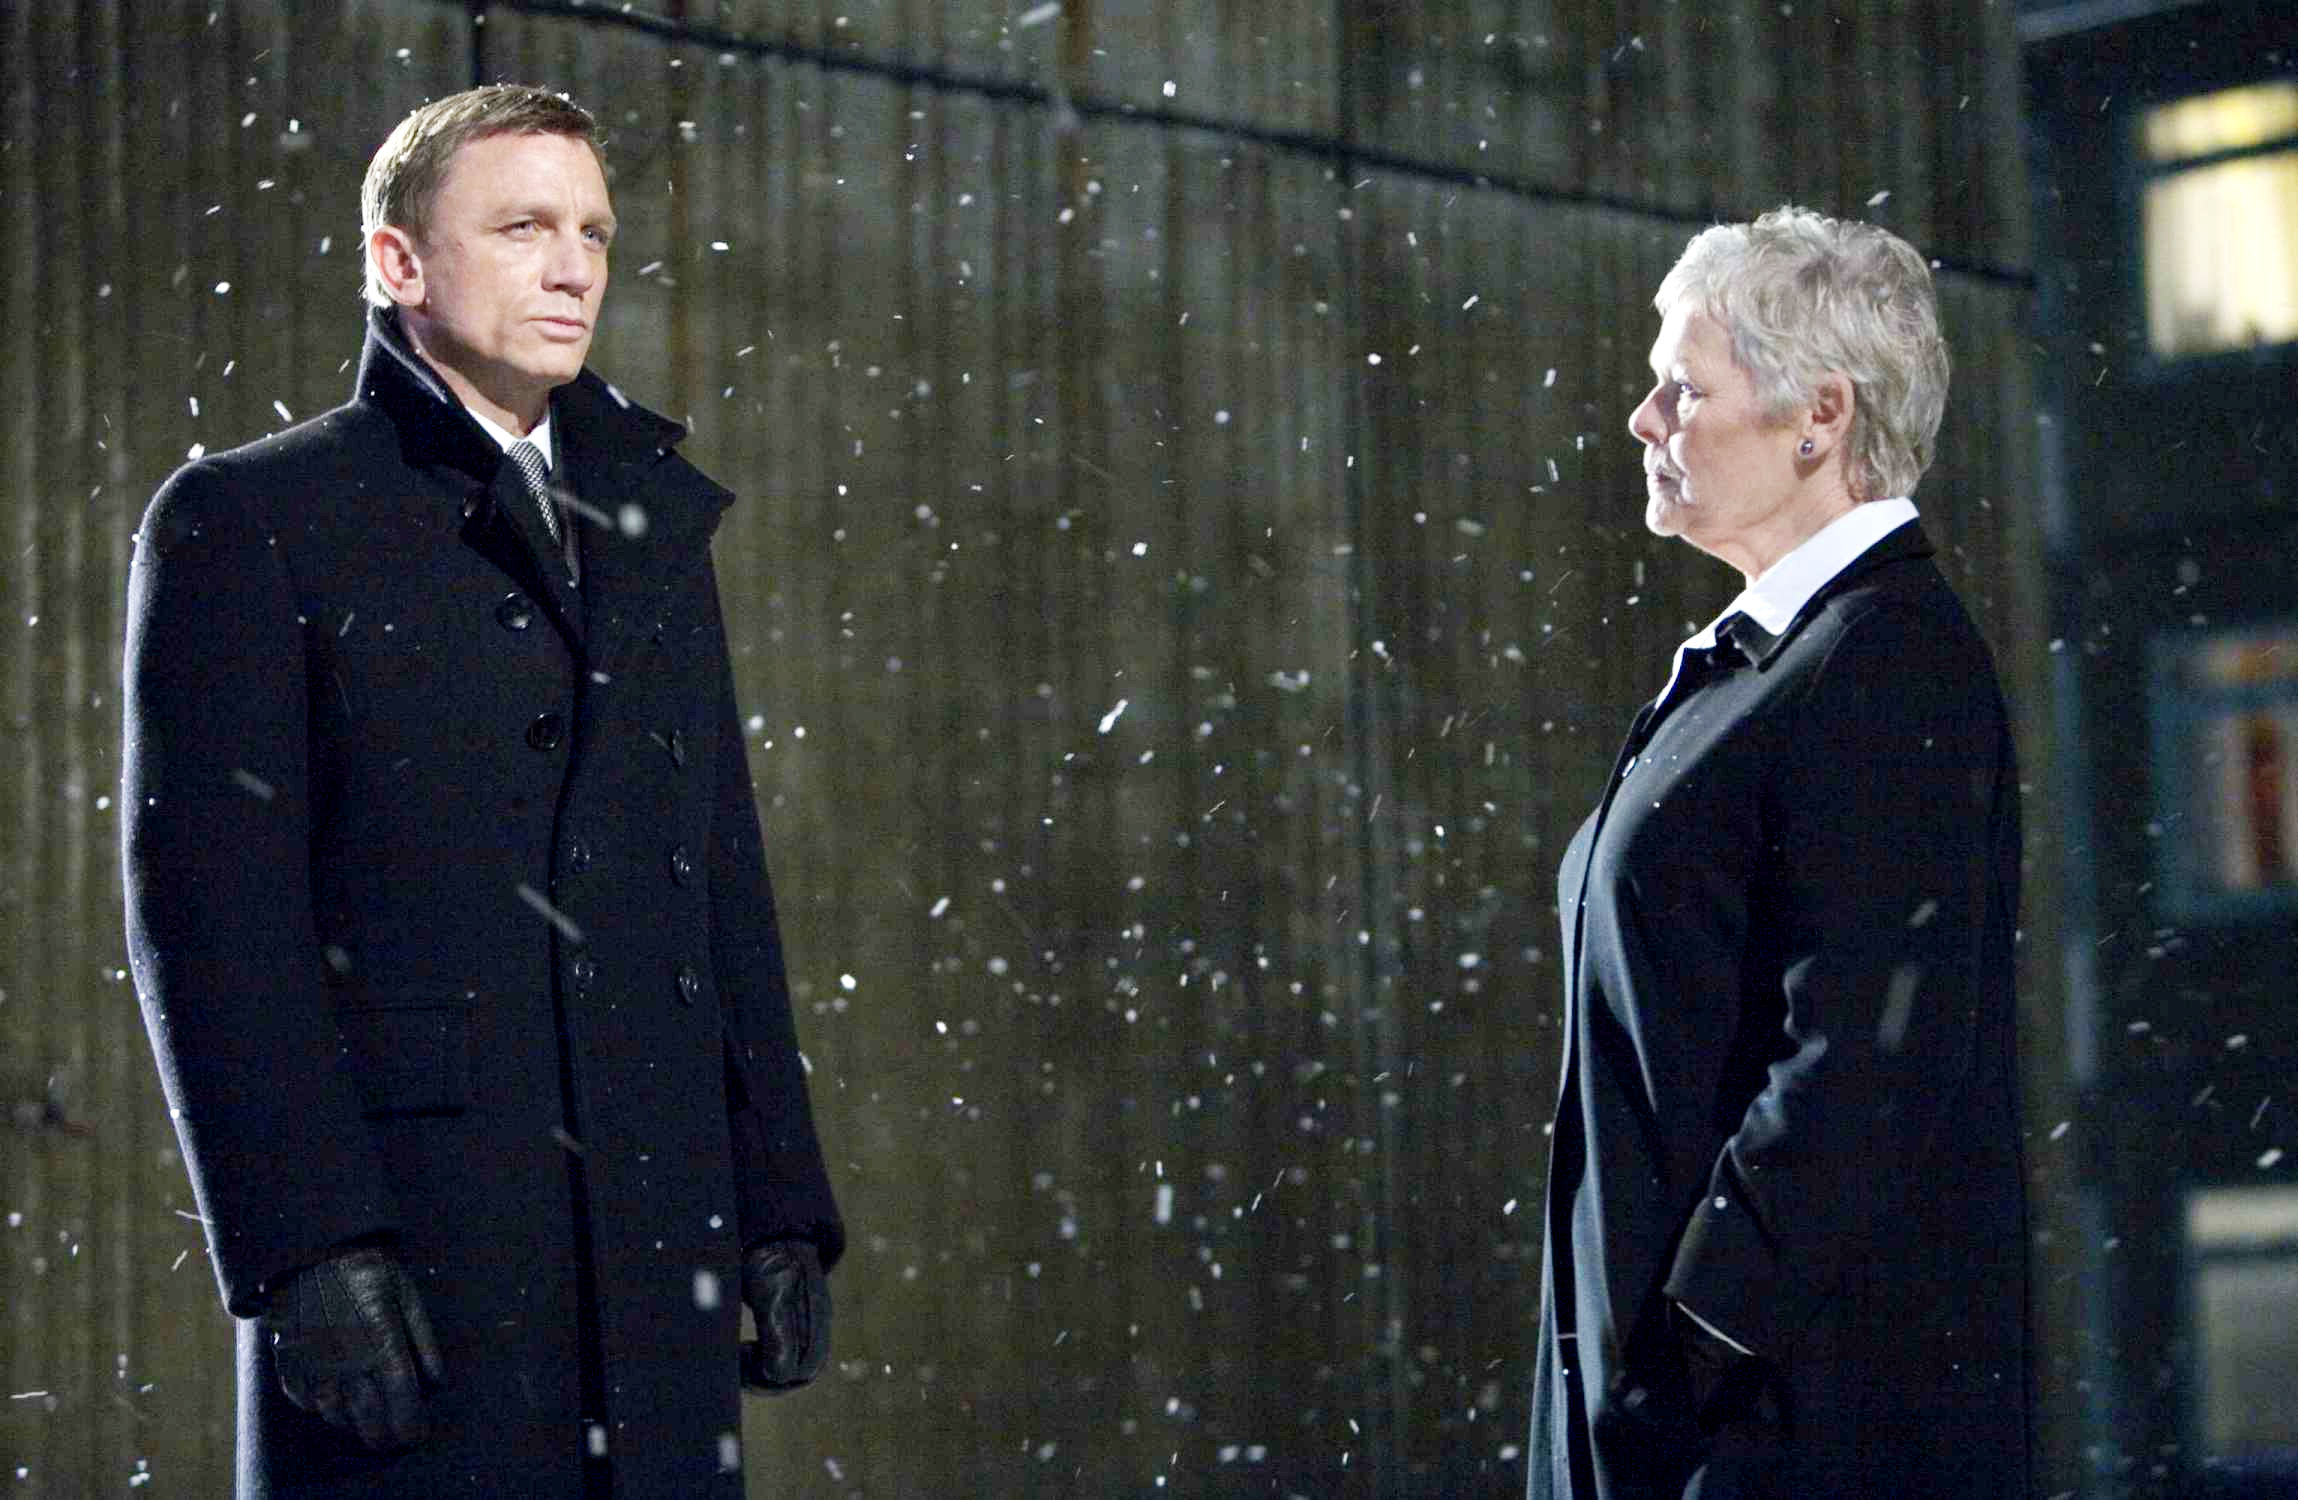 Daniel Craig stars as James Bond and Judi Dench stars as M in Columbia Pictures' Quantum of Solace (2008)